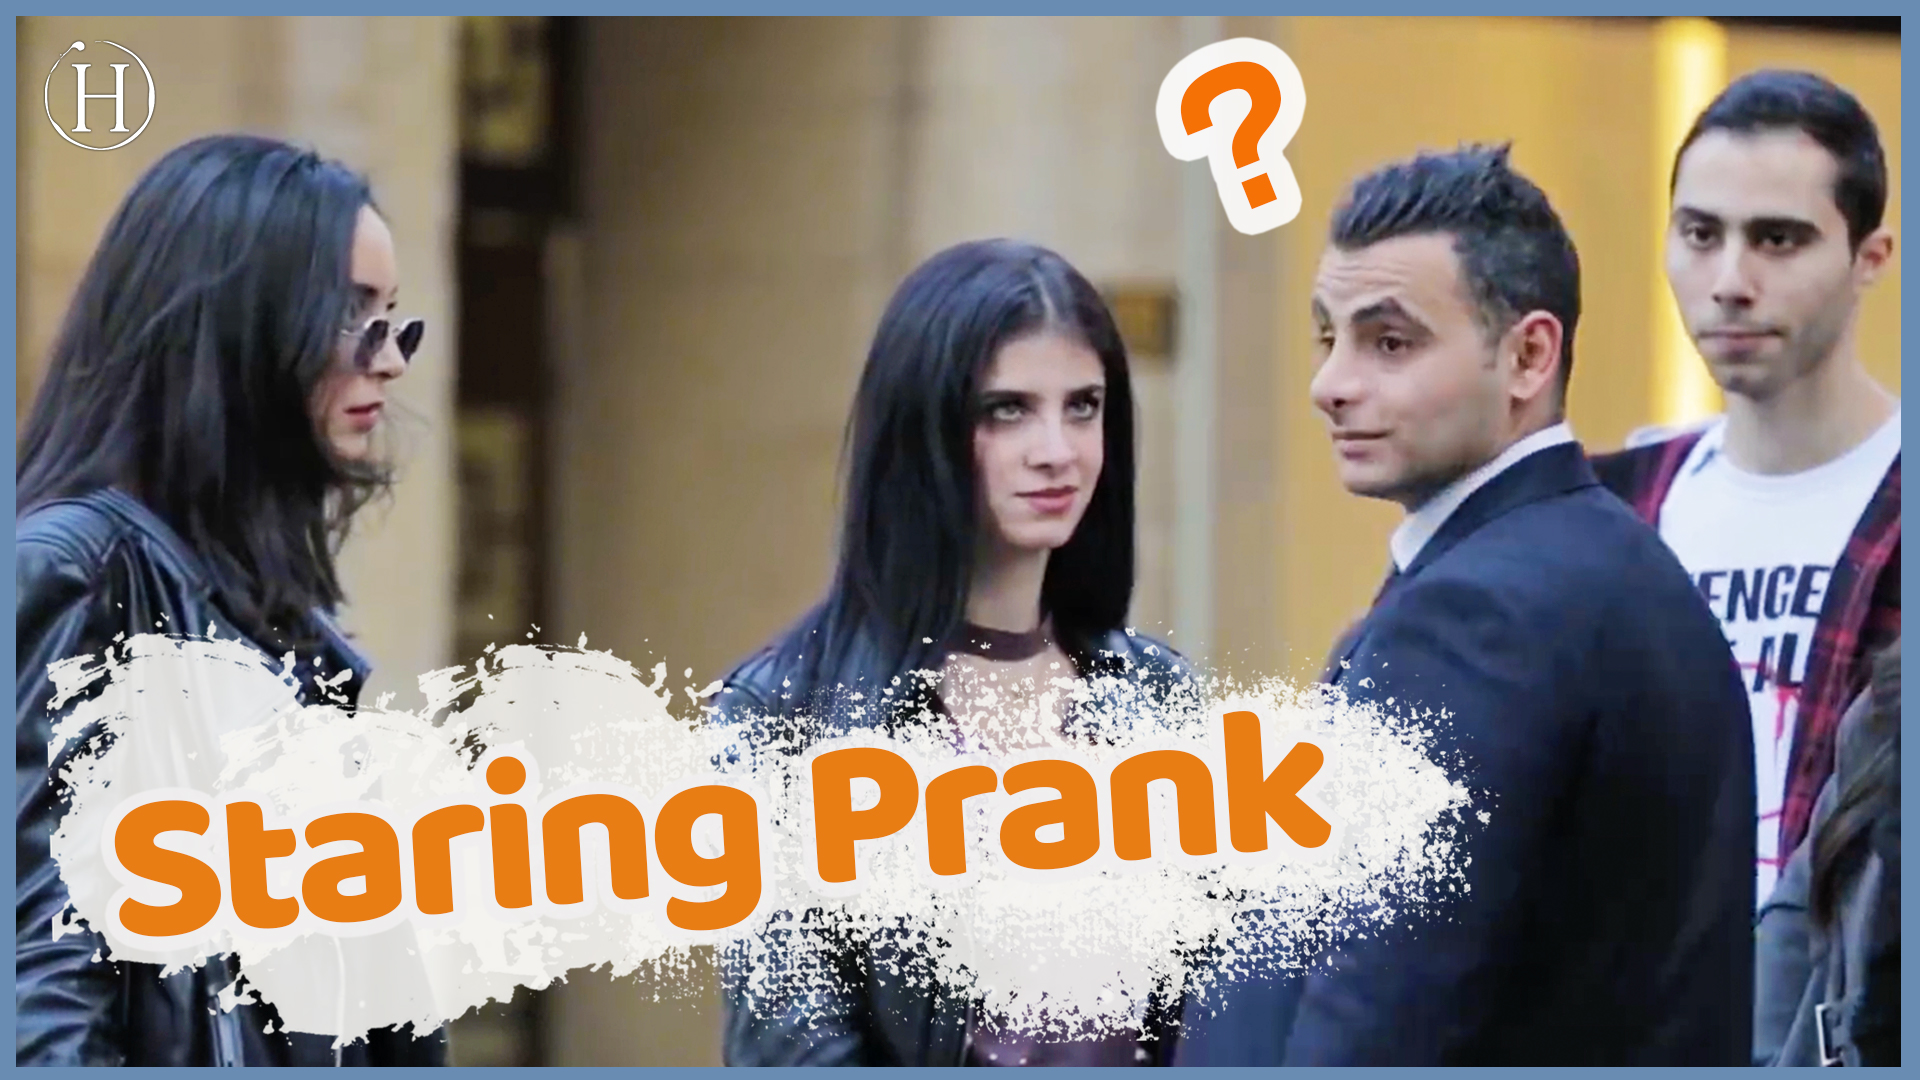 Pranksters Freak Out Strangers | Humanity Life